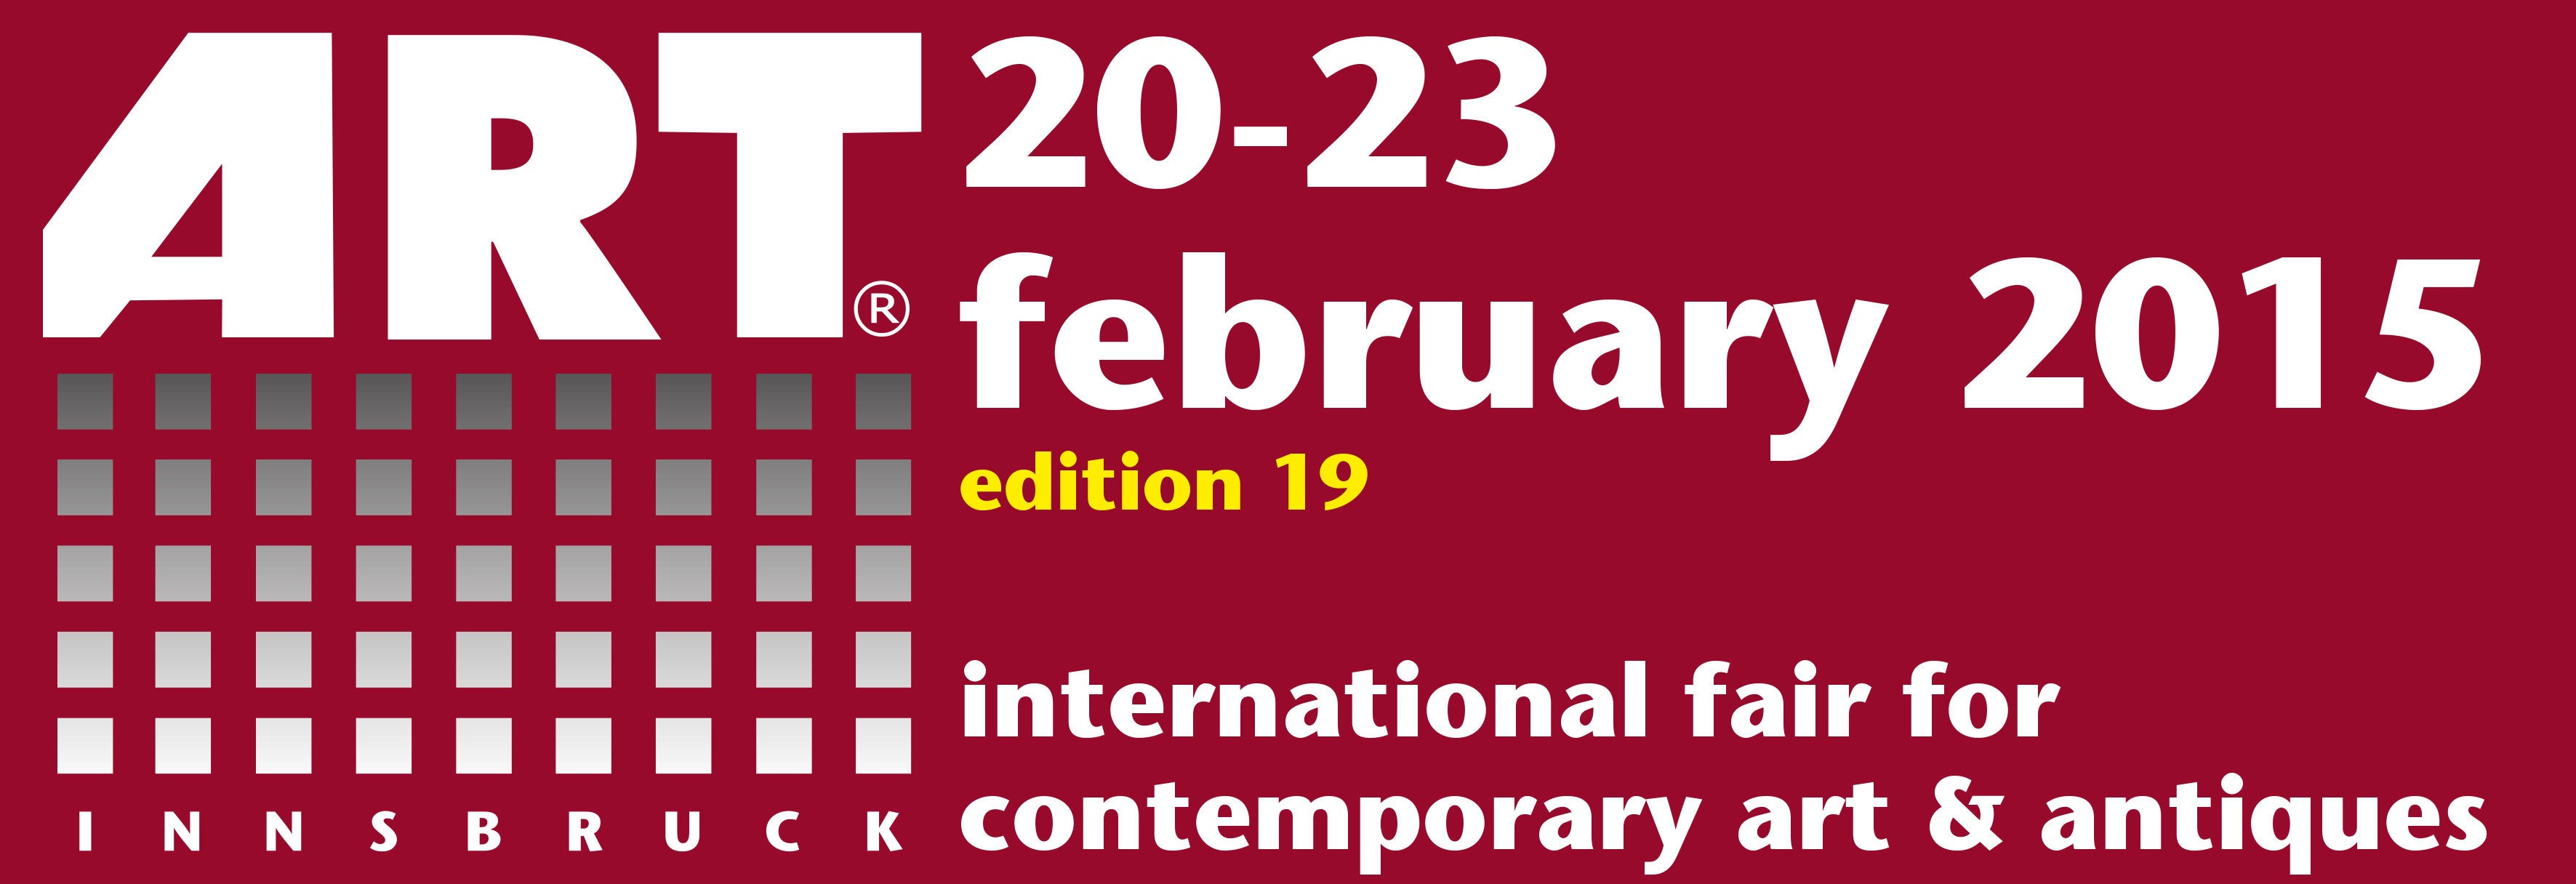 20th - 23rd February 2015 to the ART Fair Innsbruck/Austria